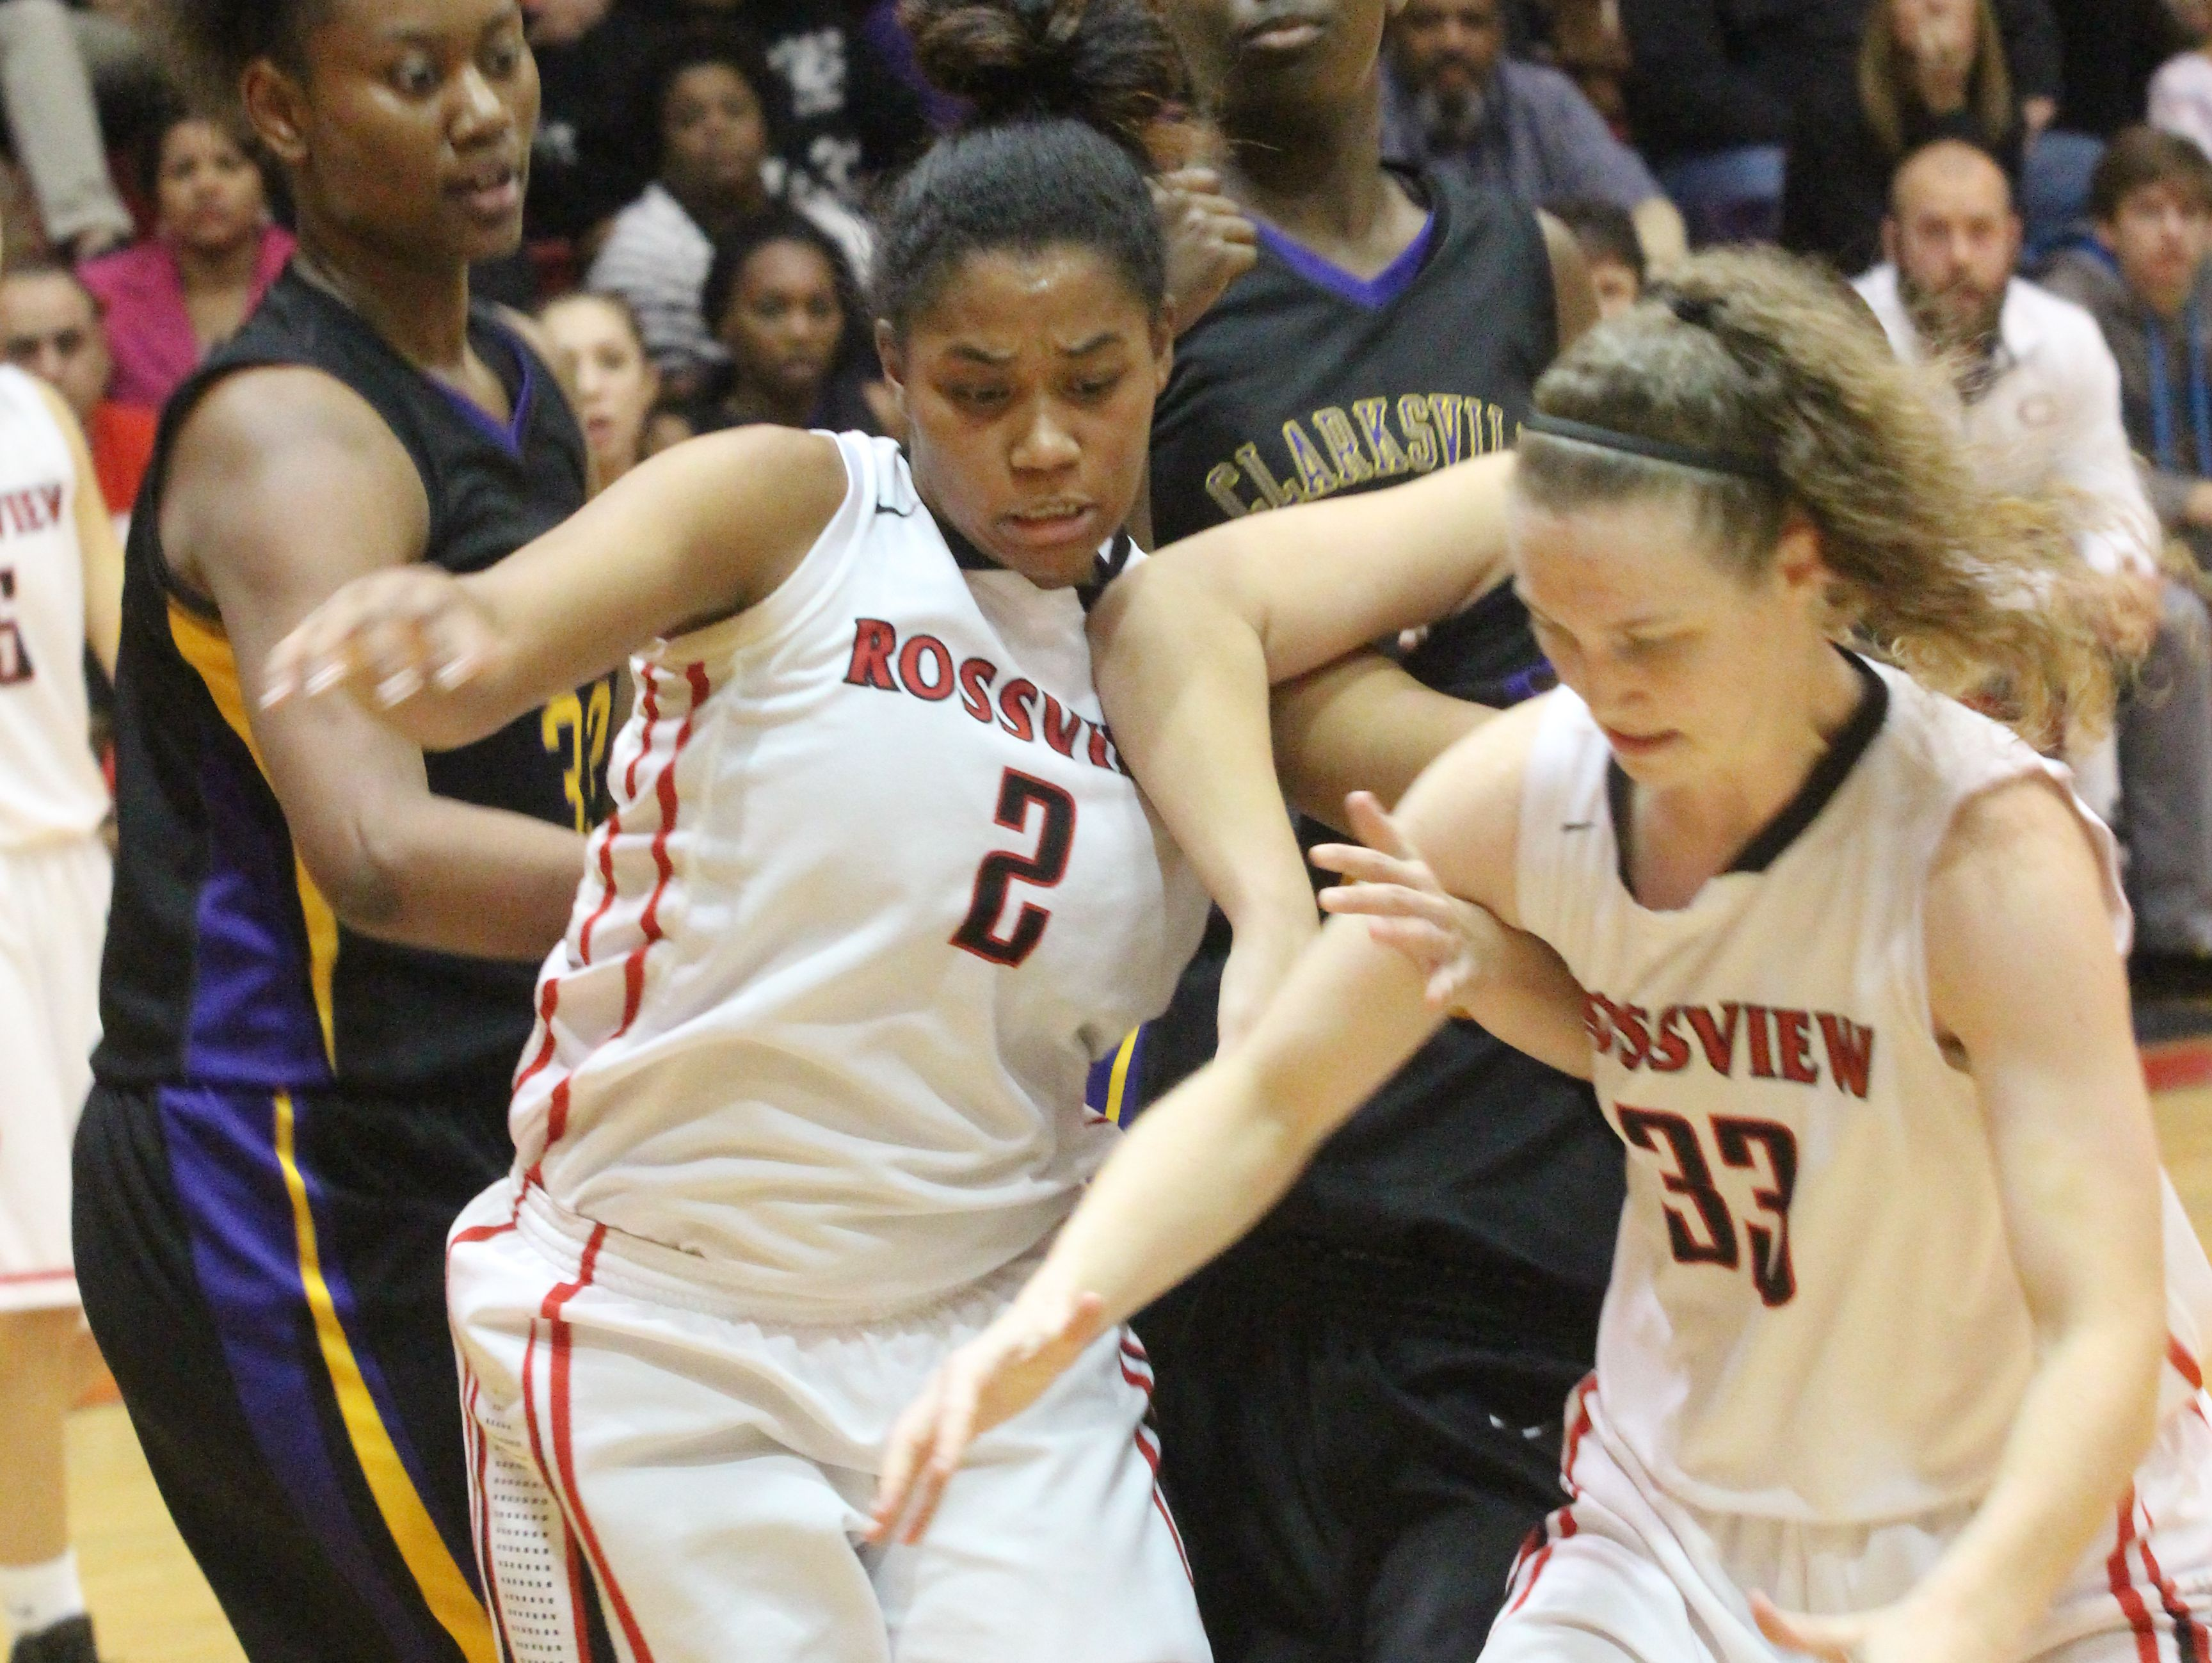 Rossview's Samajia Ogburn (2) and Liz Quinio (33) battle for the ball against Clarksville's Deja Wells and Chrislen Brown during the first half of their District 10 basketball game Tuesday.